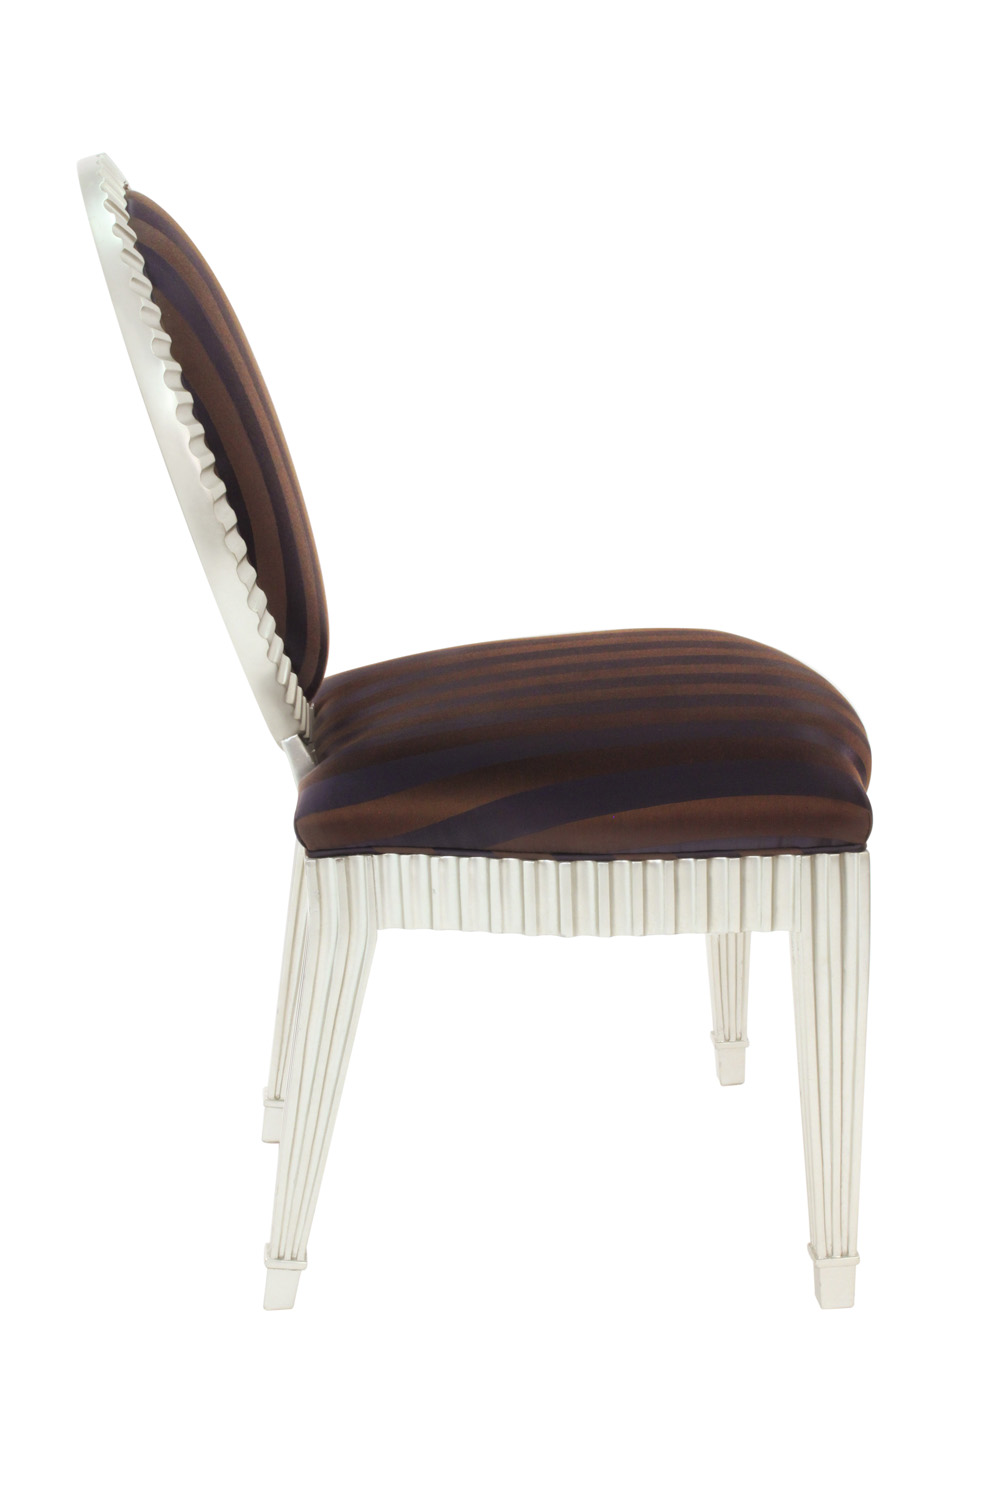 Donghia 120 set4 silver channeld diningchairs156 detail3 hires.jpg